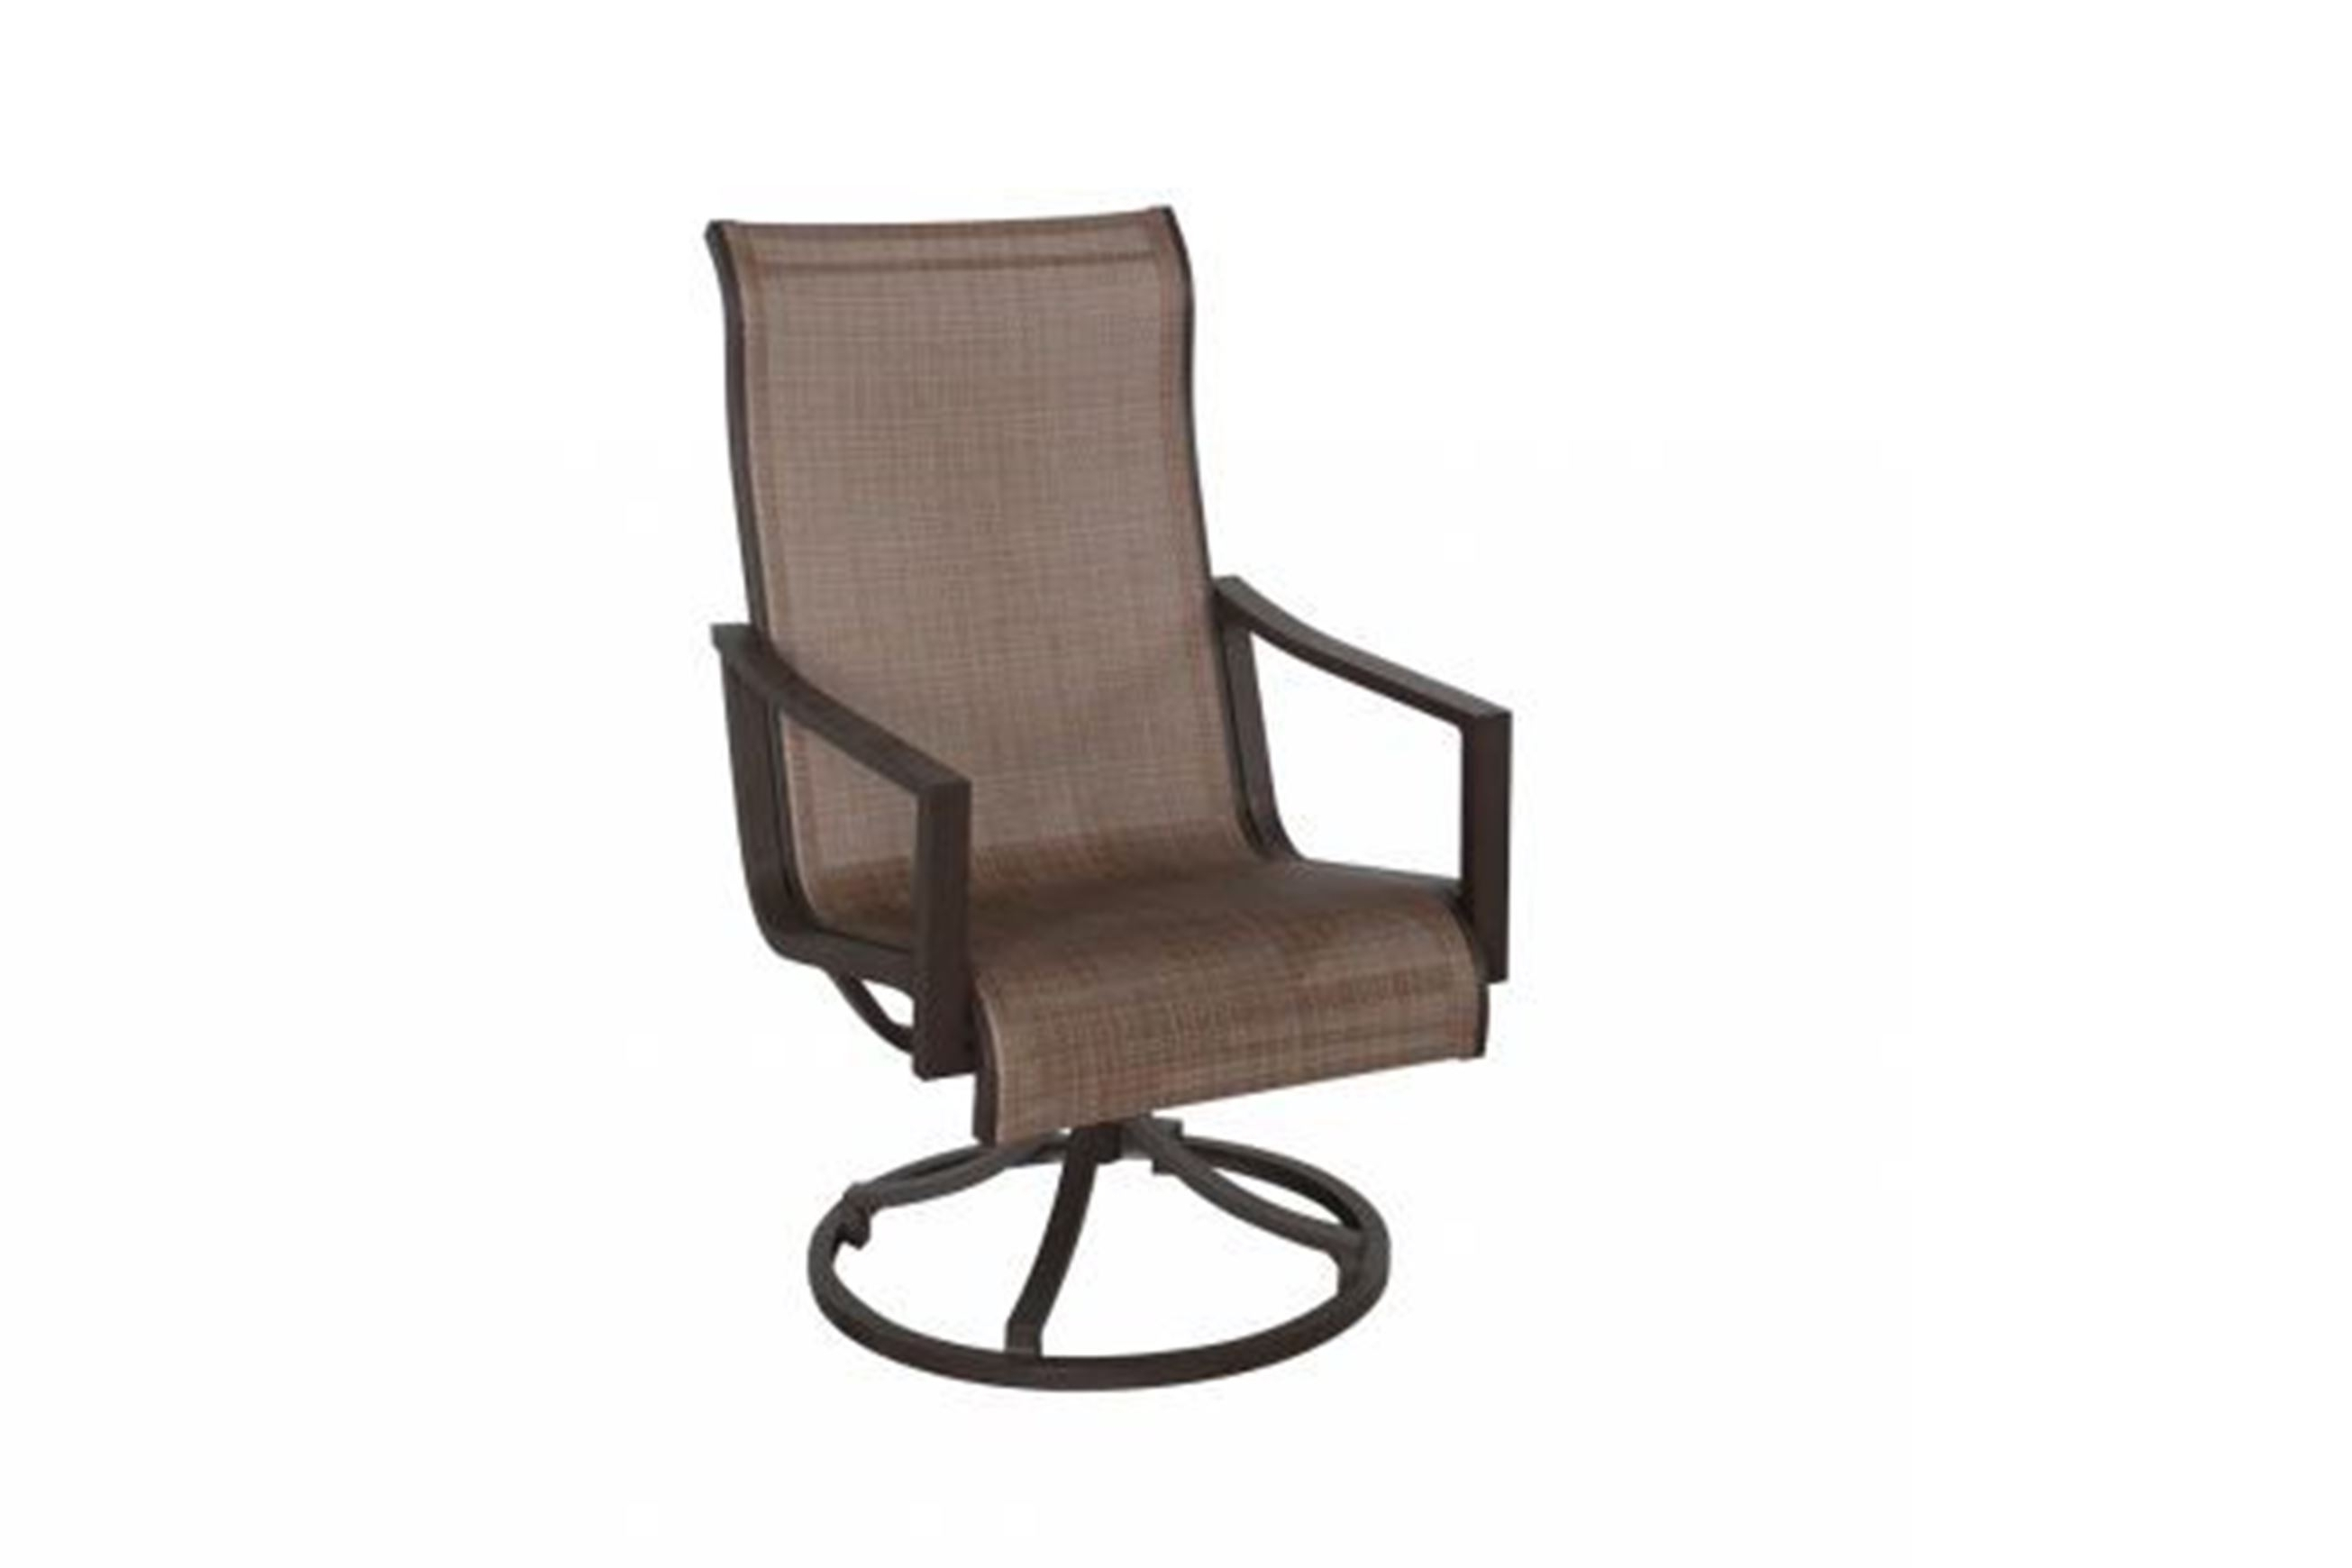 2nd Shade Patio Furniture (View 12 of 15)